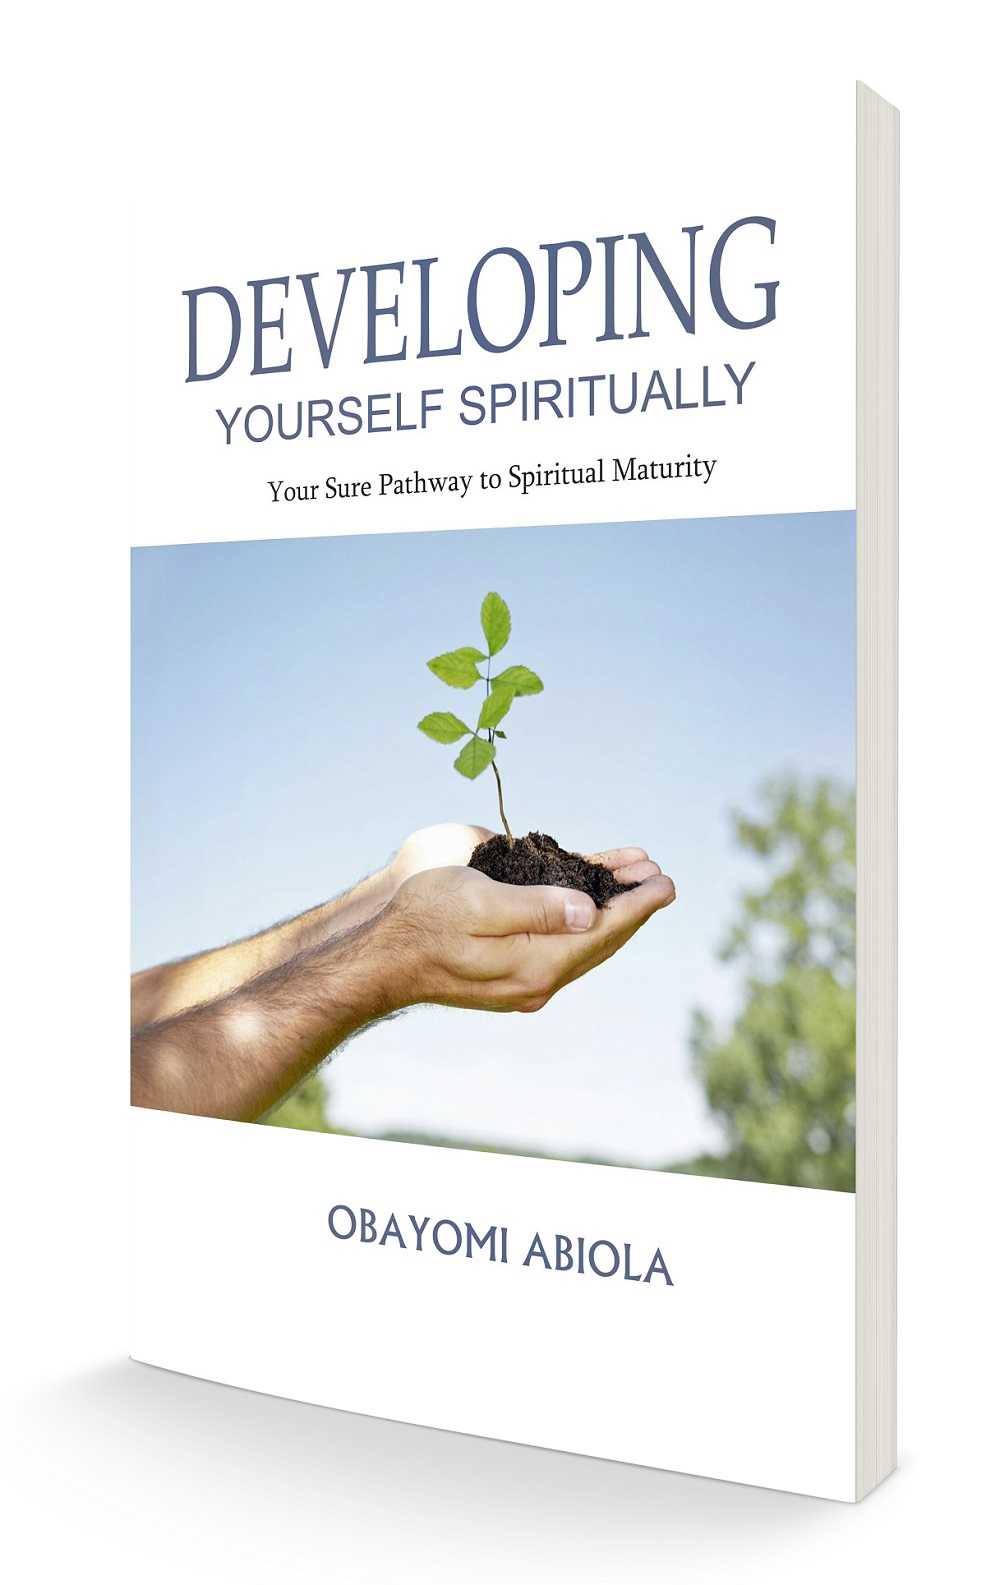 DEVELOPING YOURSELF SPIRITUALLY: YOUR SURE PATHWAY TO SPIRITUAL MATURITY